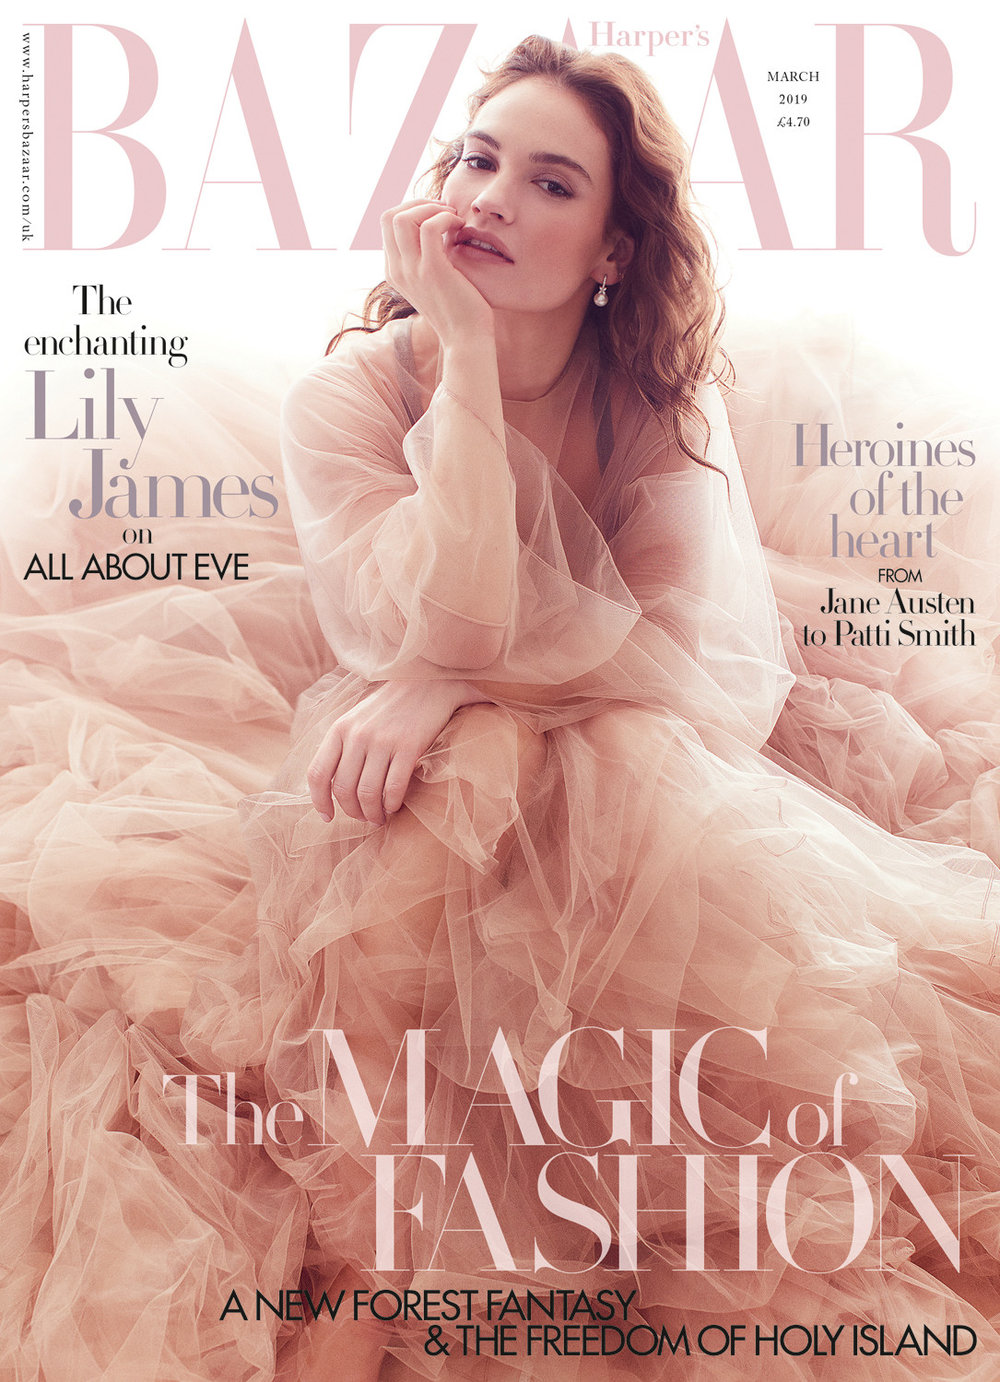 Lily James by Alex Lubomirski for Harpers Bazaar UK March 2019 (6).jpg